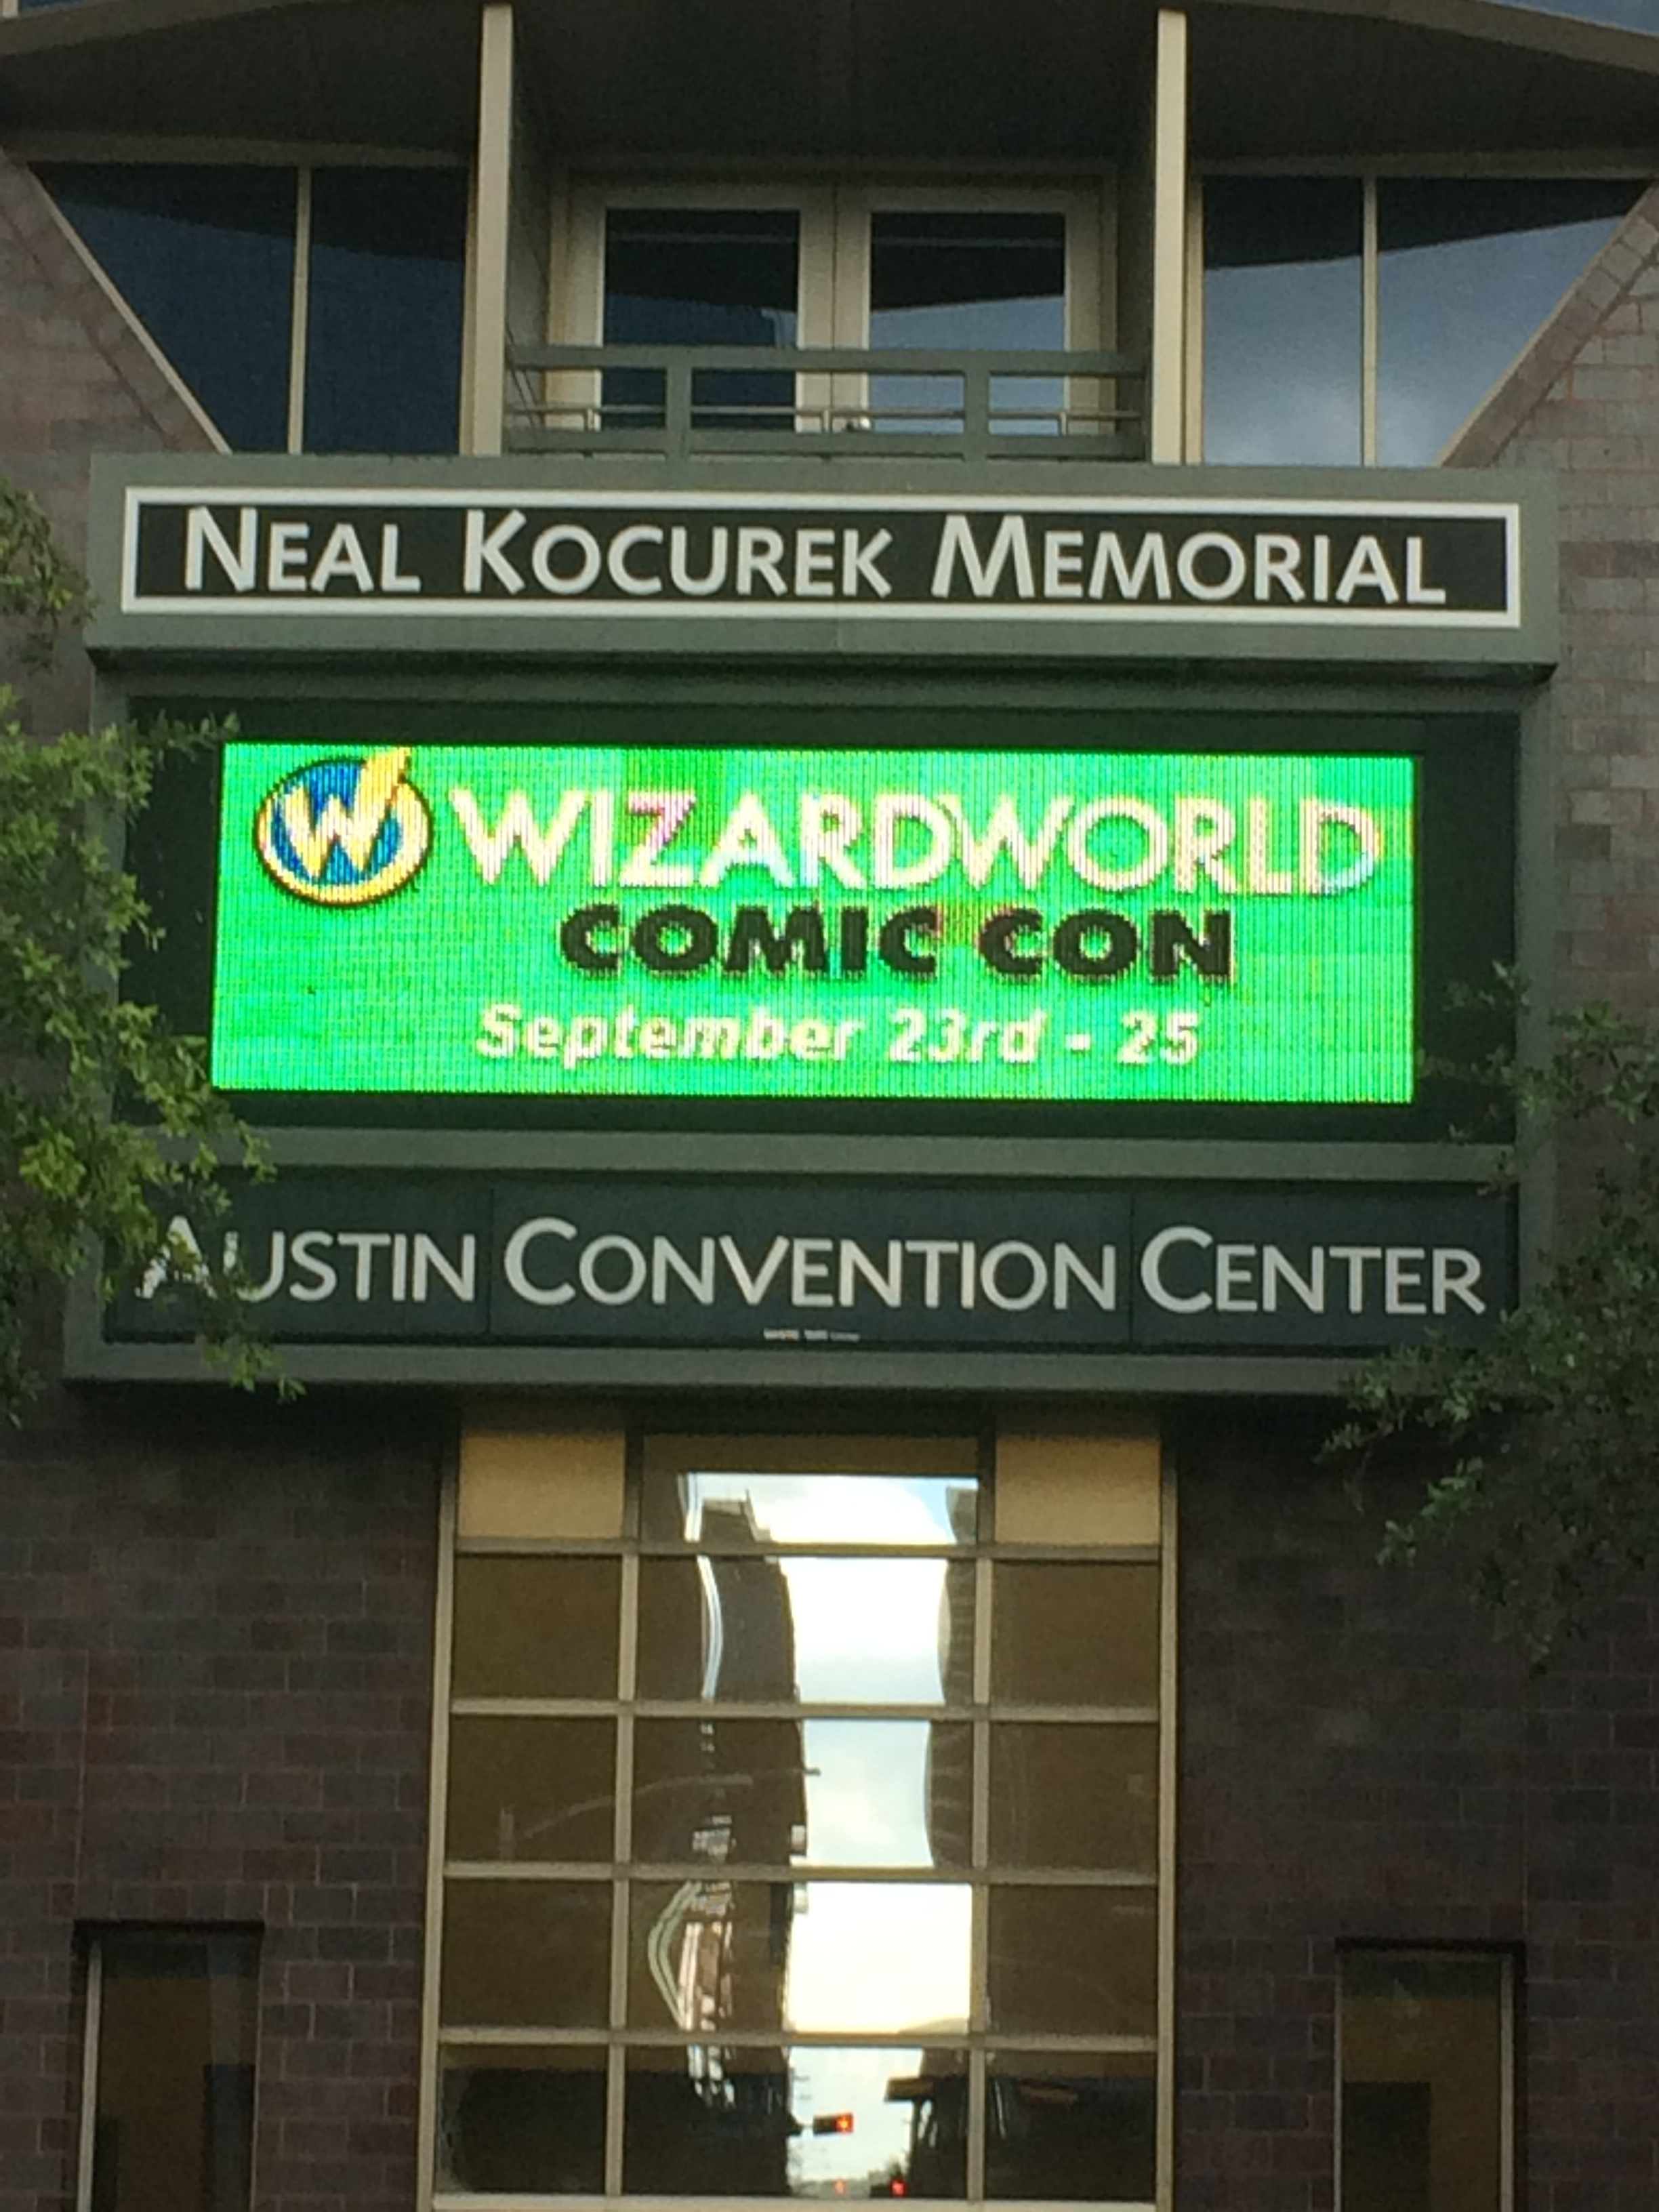 Wizardworld Comic Con <a href='http://aus.exprealty.com/index.php?types[]=1&types[]=2&areas[]=city:Austin&beds=0&baths=0&min=0&max=100000000&map=0&quick=1&submit=Search' title='Search Properties in Austin'>Austin</a>